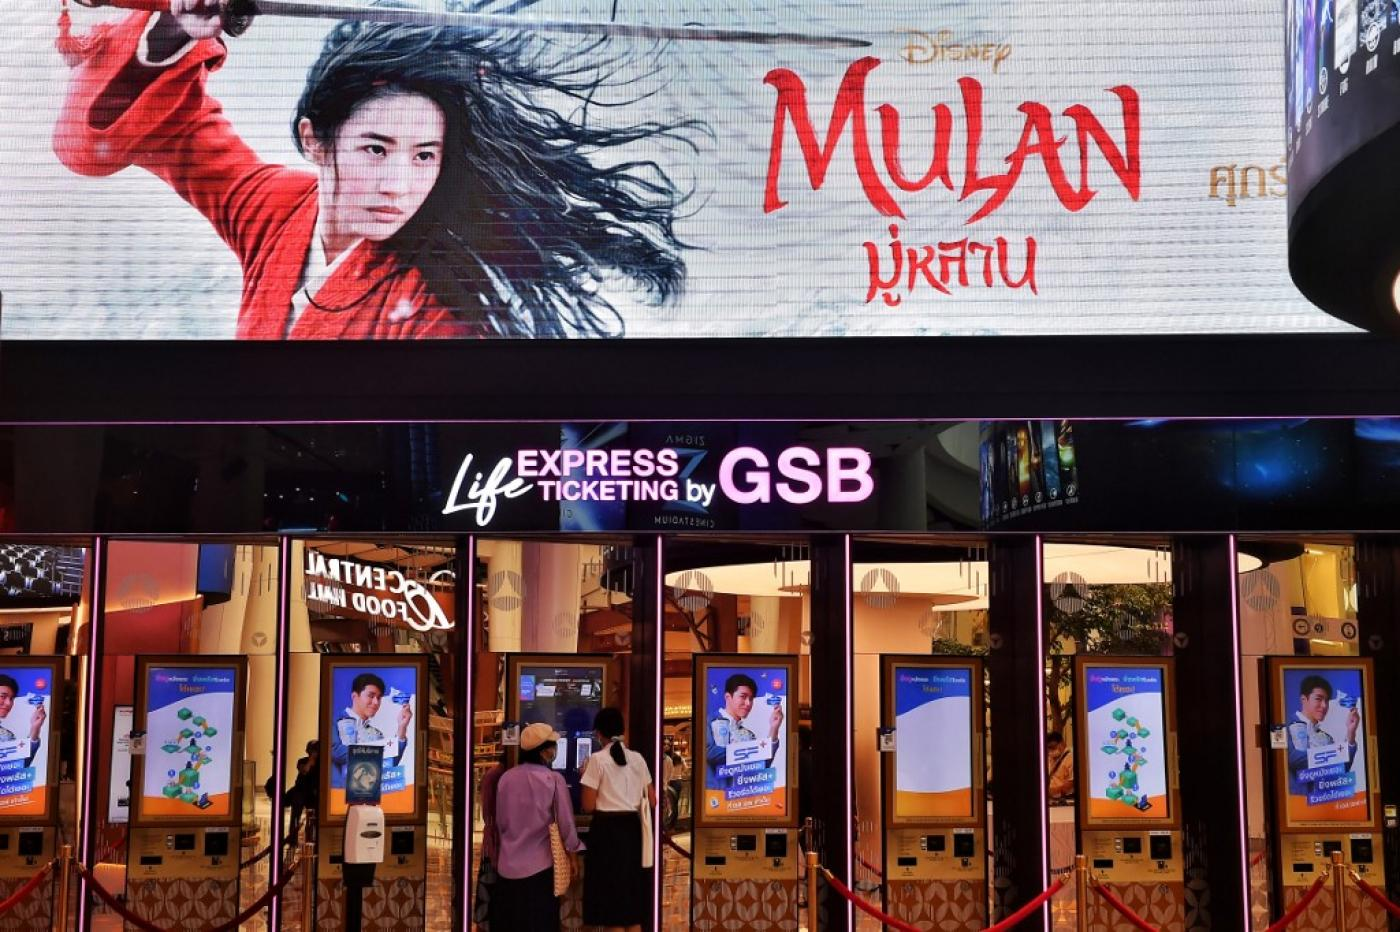 Mulan Under Fire for Filming in Xinjiang, Calls for Boycott Renewed